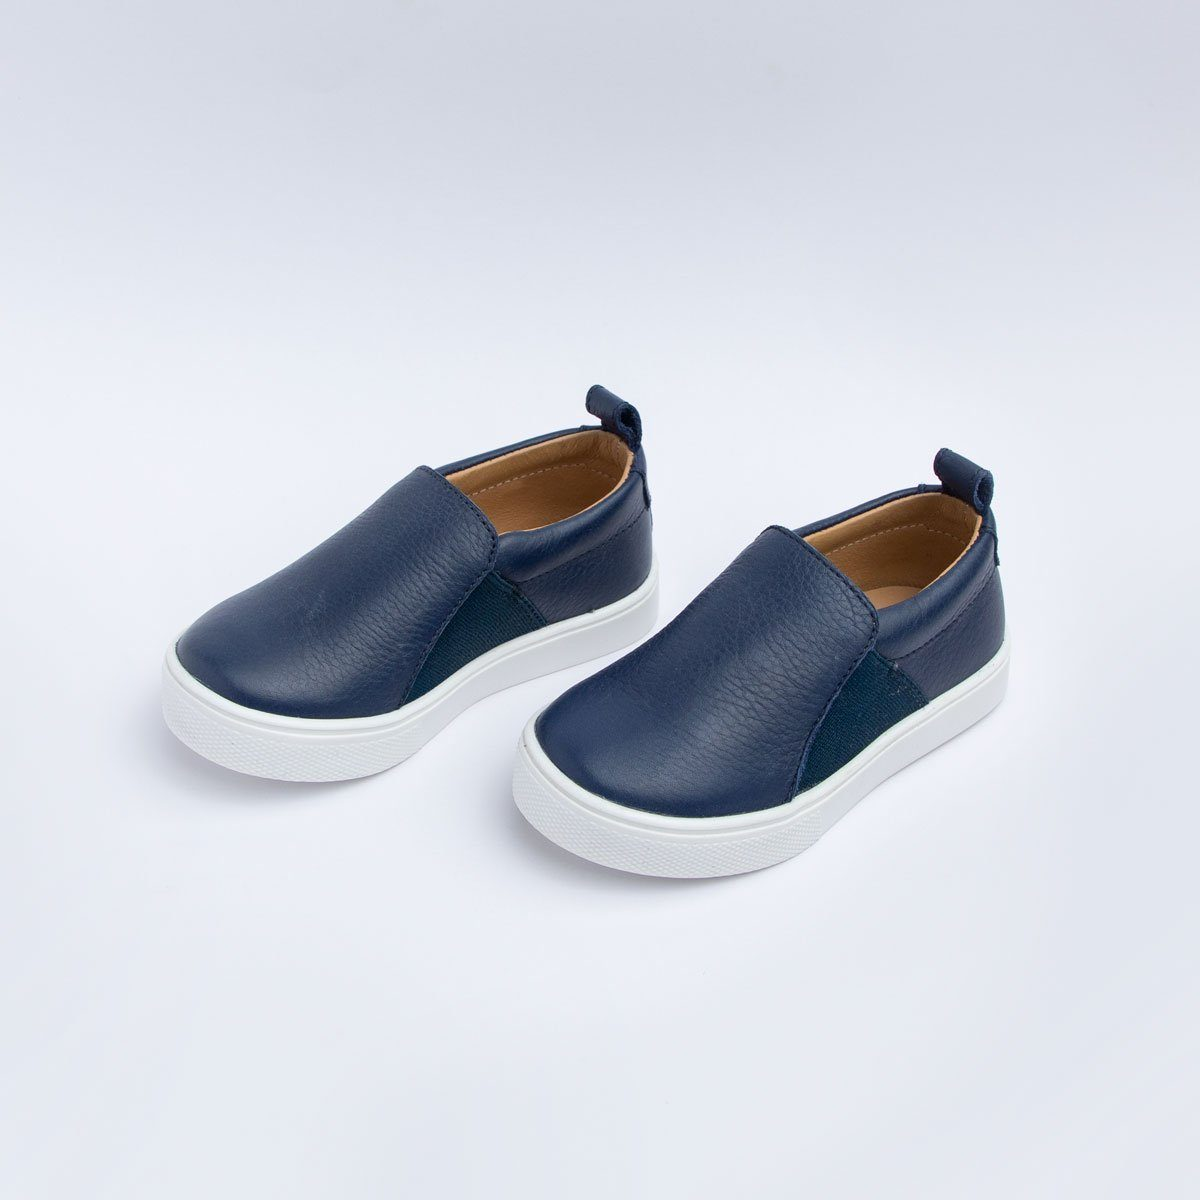 Navy Slip-On Sneaker Kids - Classic Slip-On Sneaker Kids Sneakers